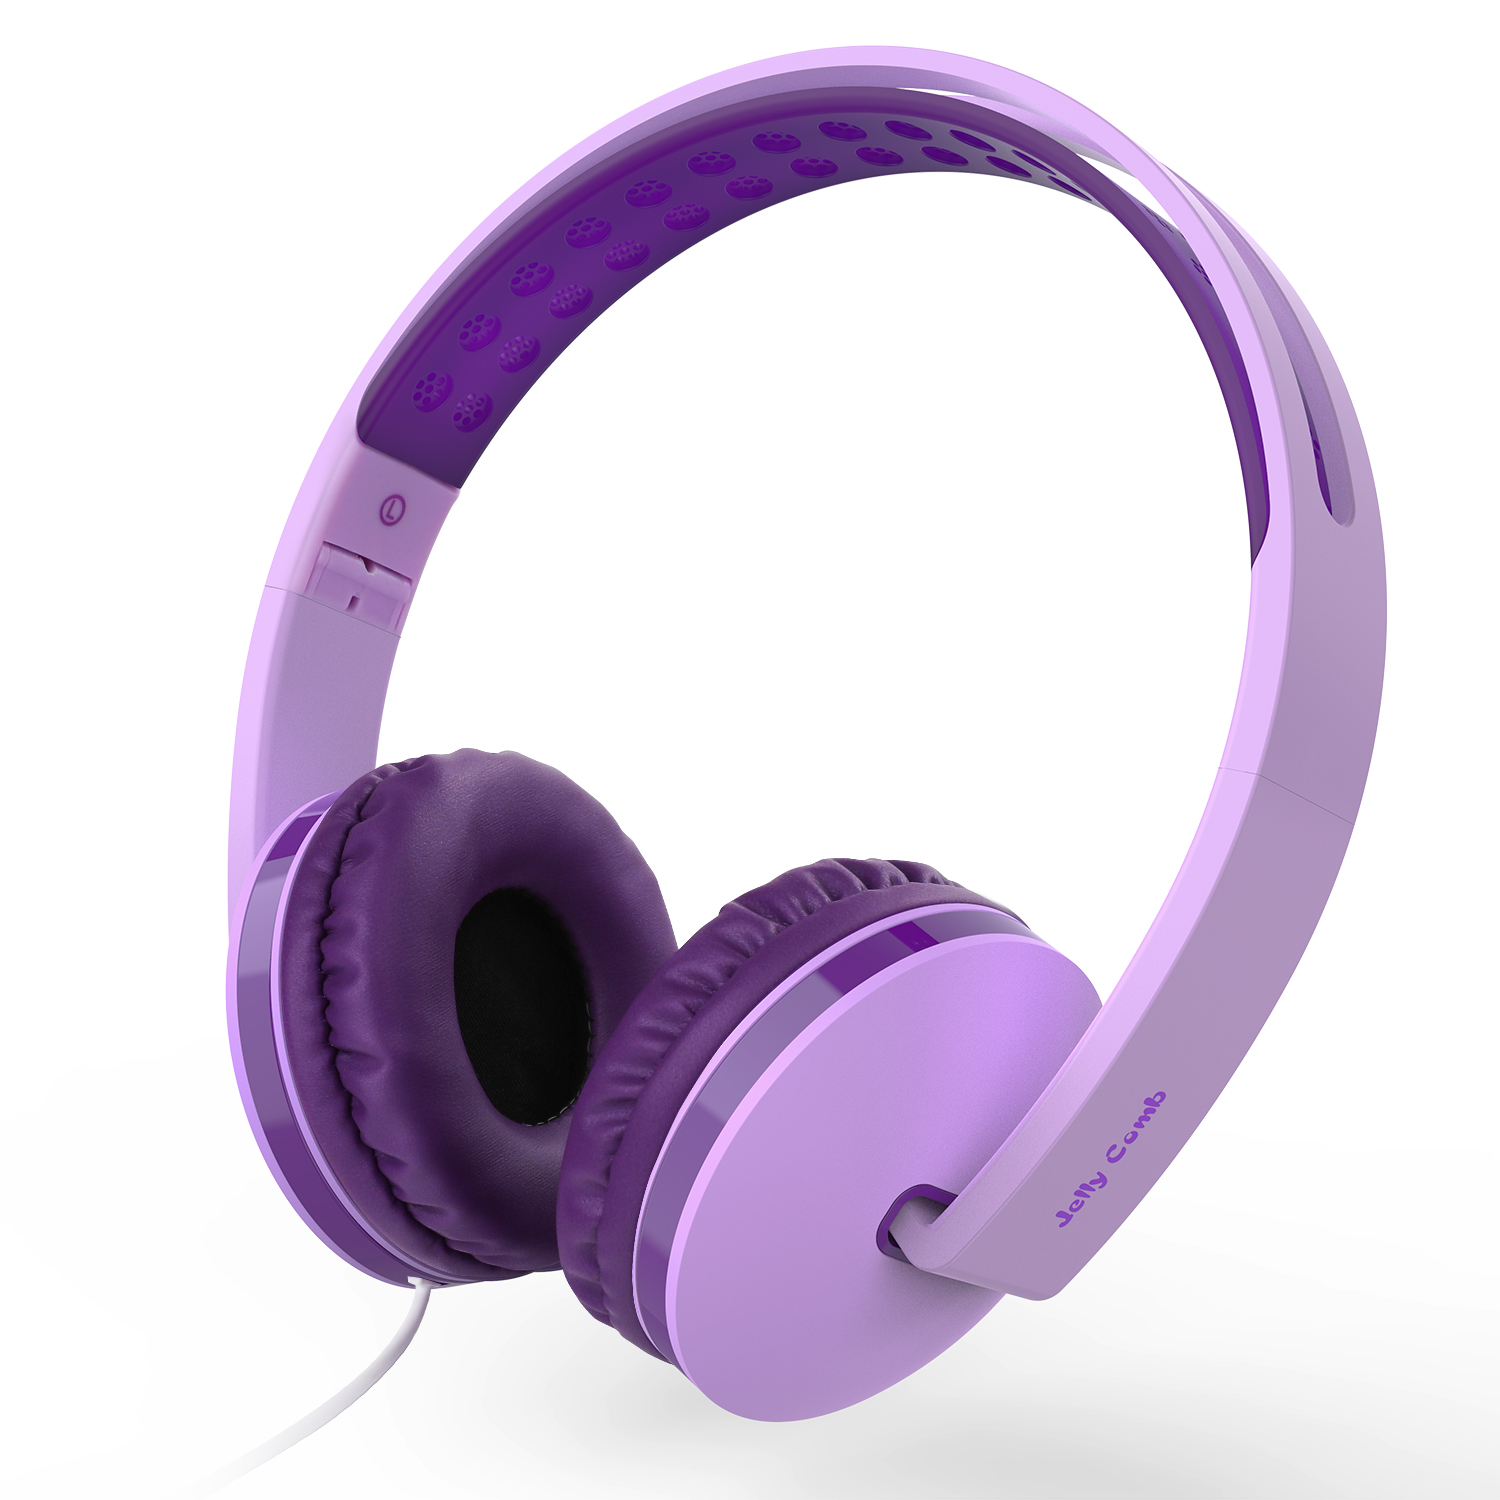 On Ear Headphones with Mic, Jelly Comb Foldable Corded Headphones Wired Headsets with Microphone, Volume Control for Cell Phone, Tablet, PC, Laptop, MP3/4, Video Game (Pink Purple & Deep Purple)